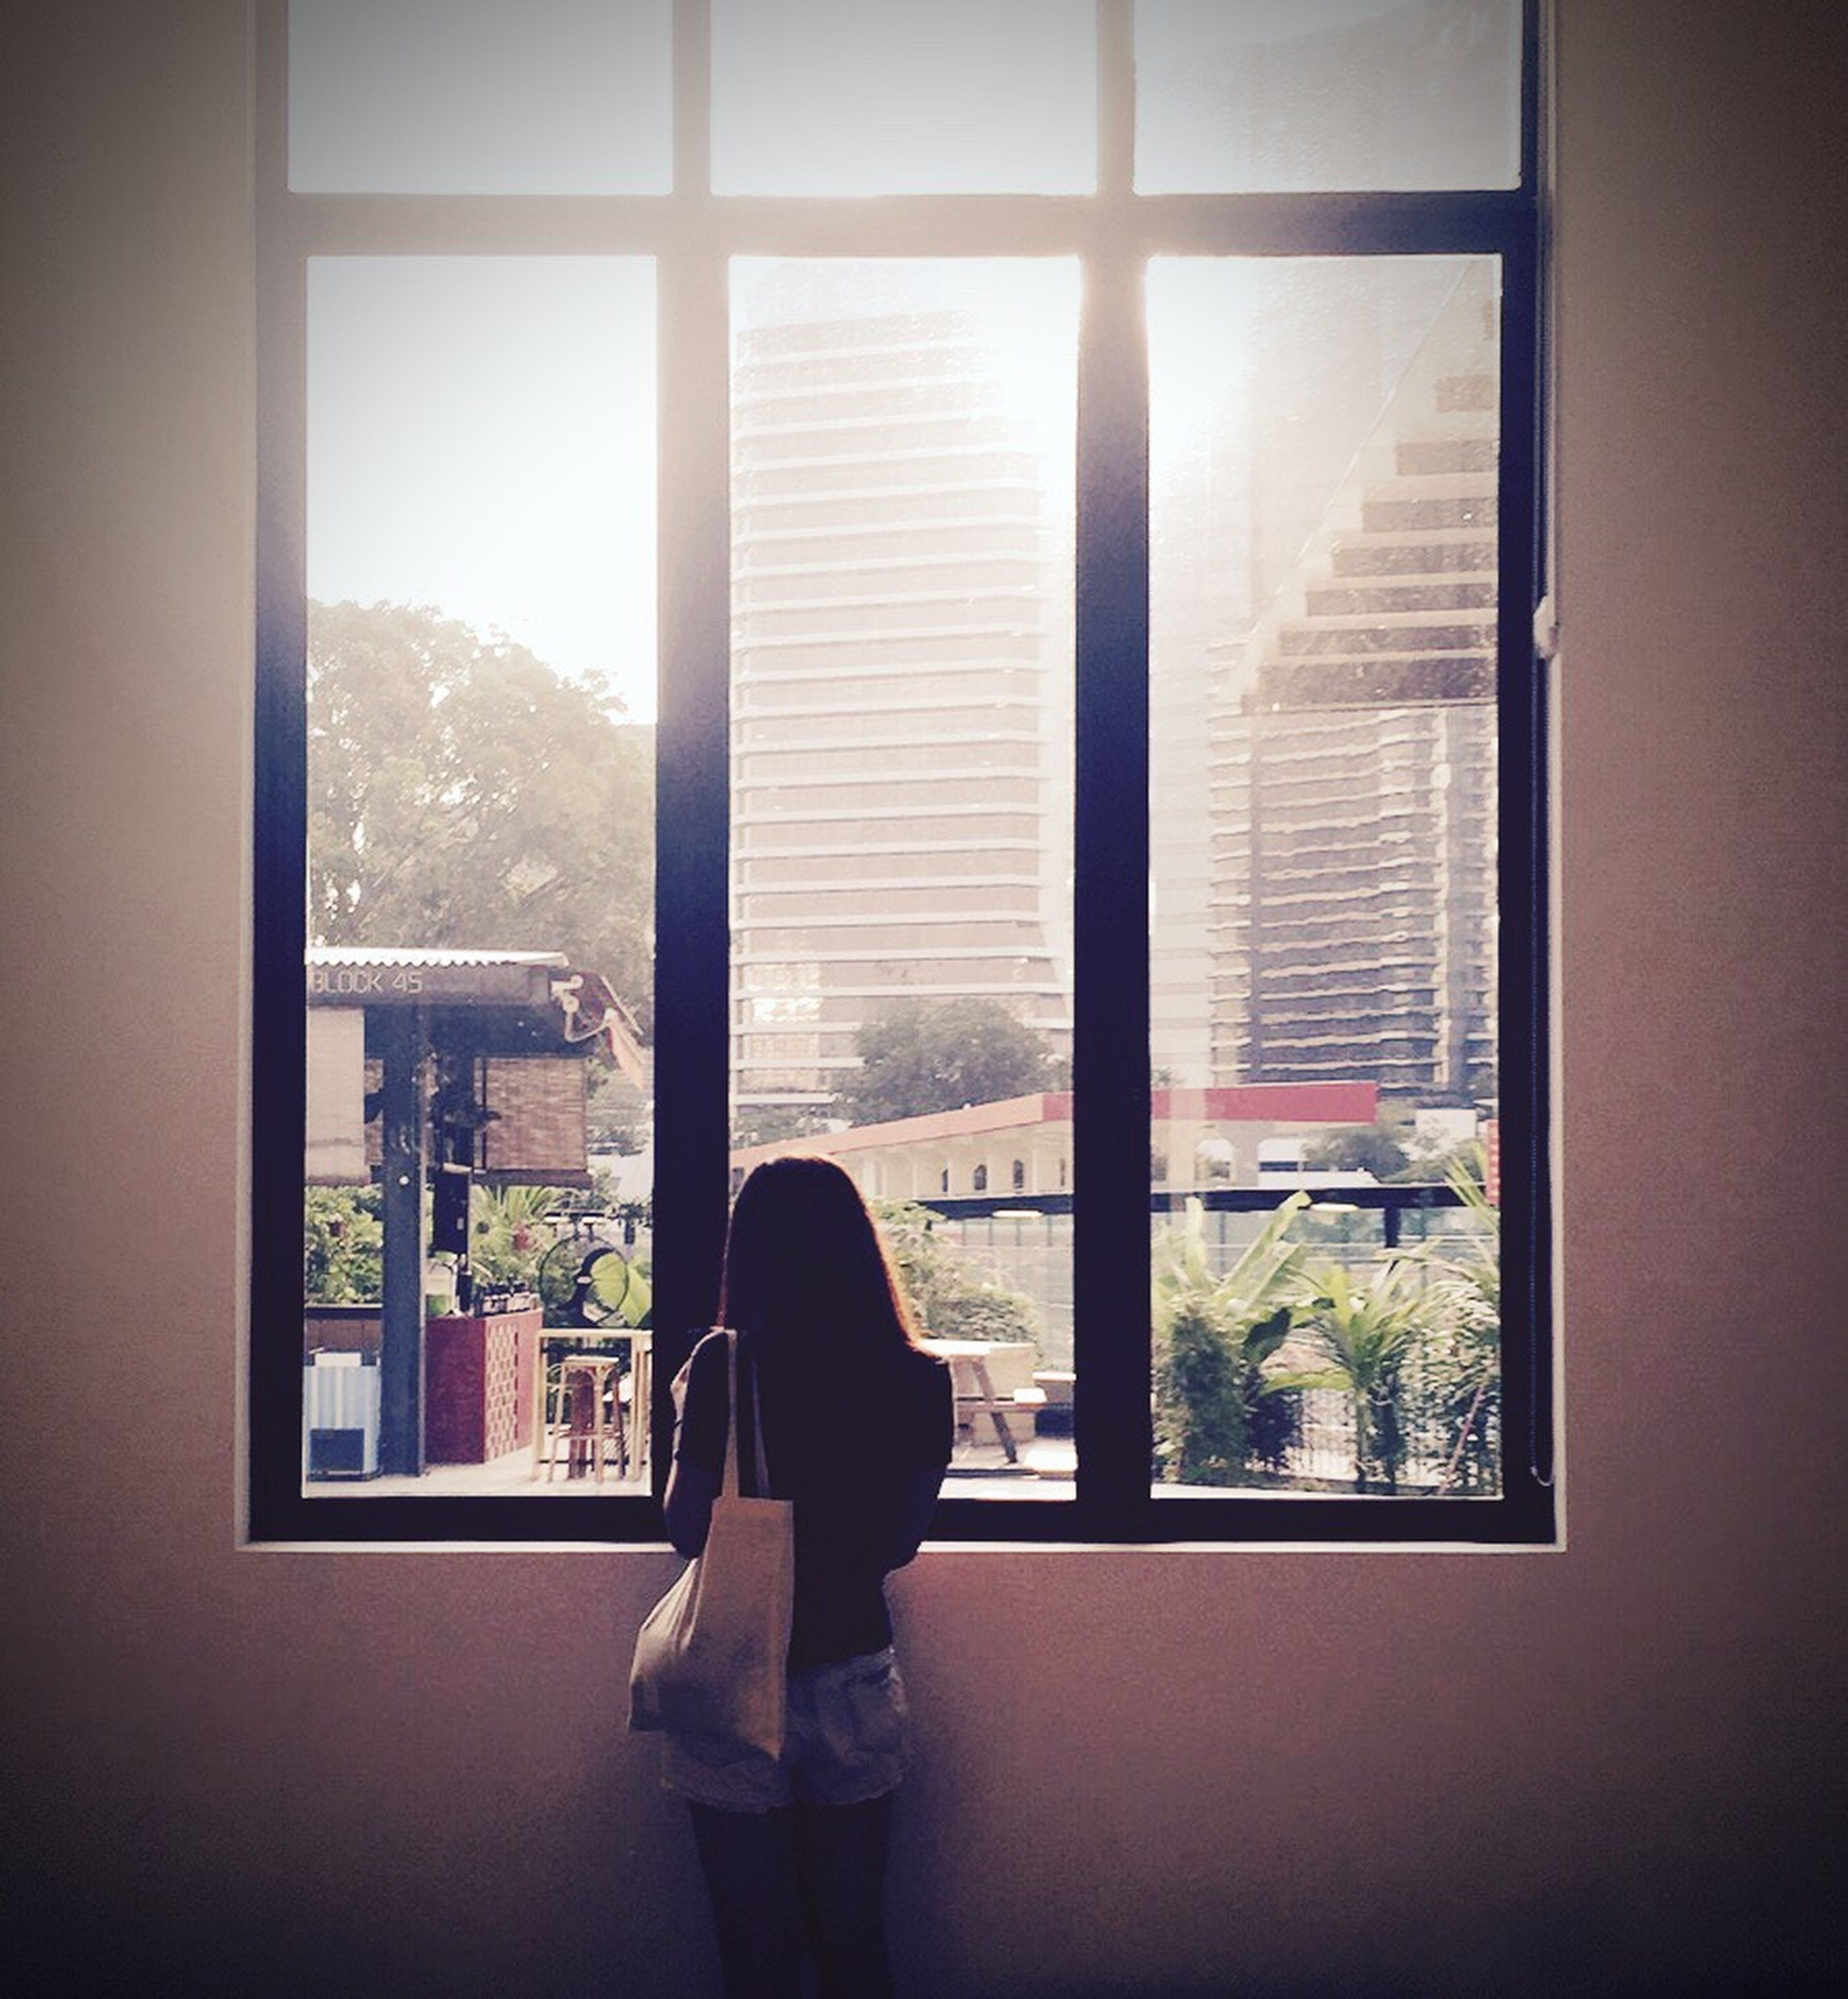 window, indoors, glass - material, rear view, transparent, lifestyles, standing, looking through window, full length, person, men, curtain, built structure, leisure activity, home interior, architecture, silhouette, window sill